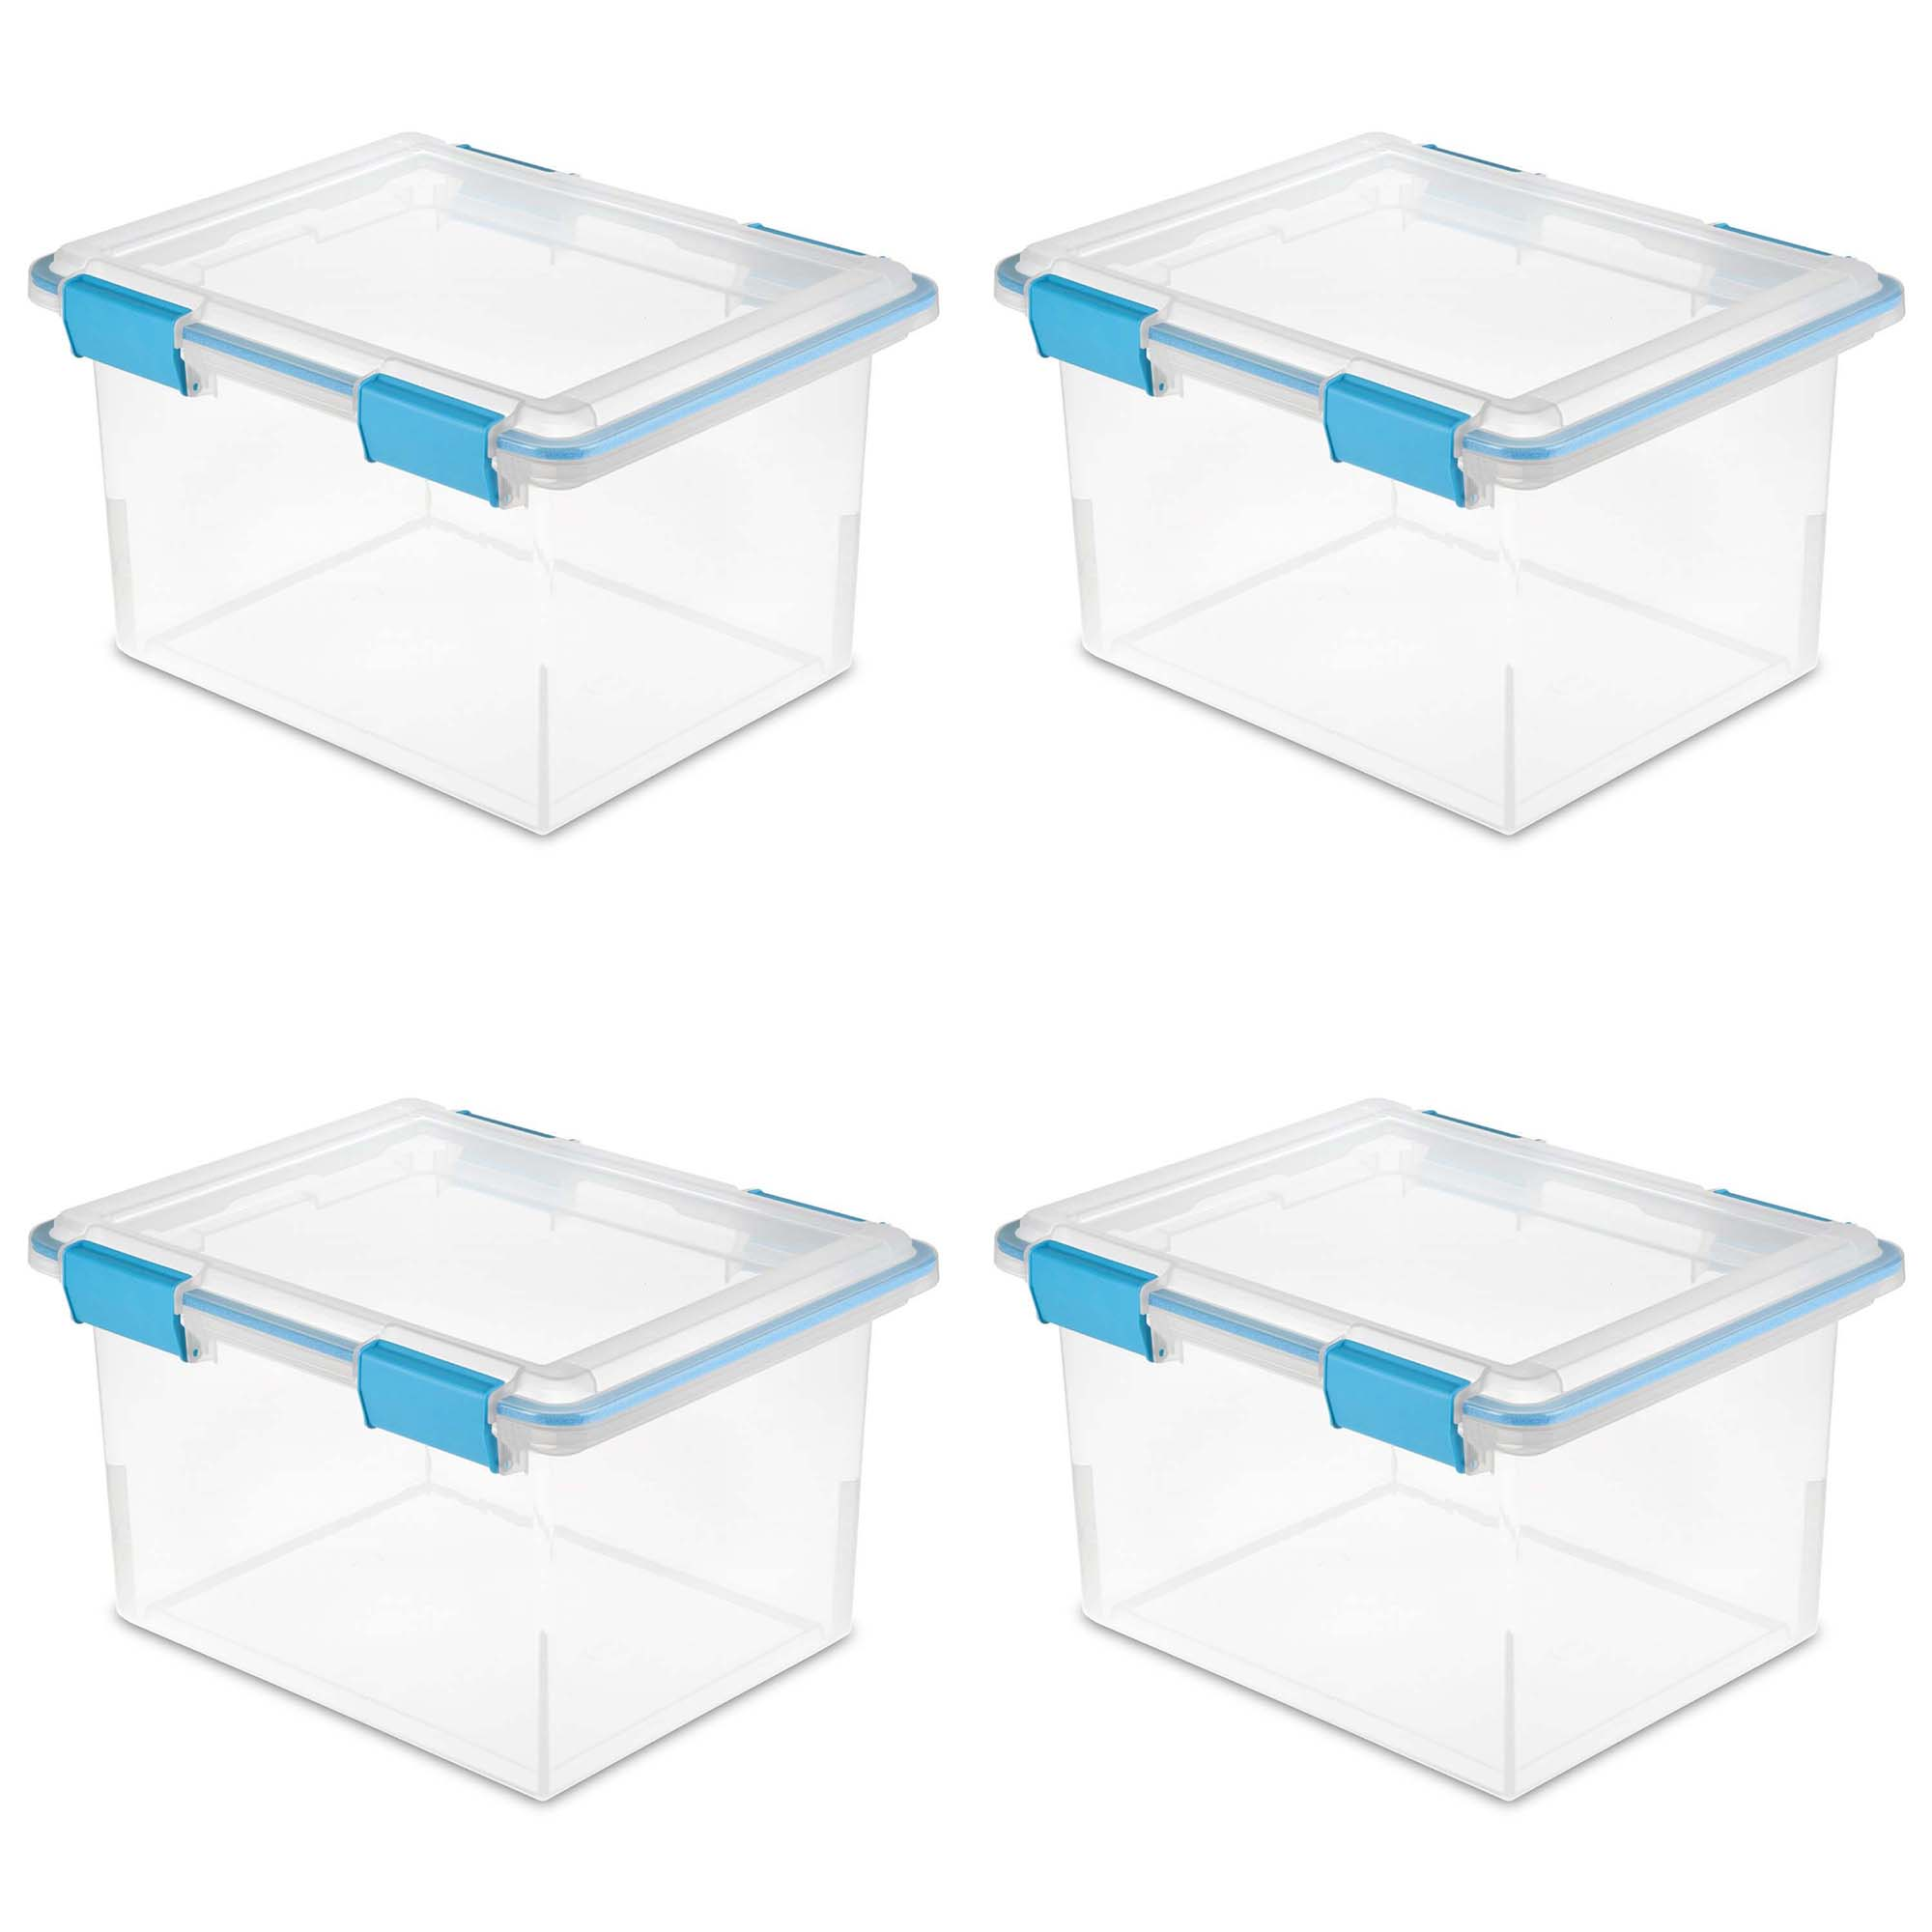 Sterilite 32 Quart Gasket Box with Clear Base and Lid (4 Pack) | 19334304